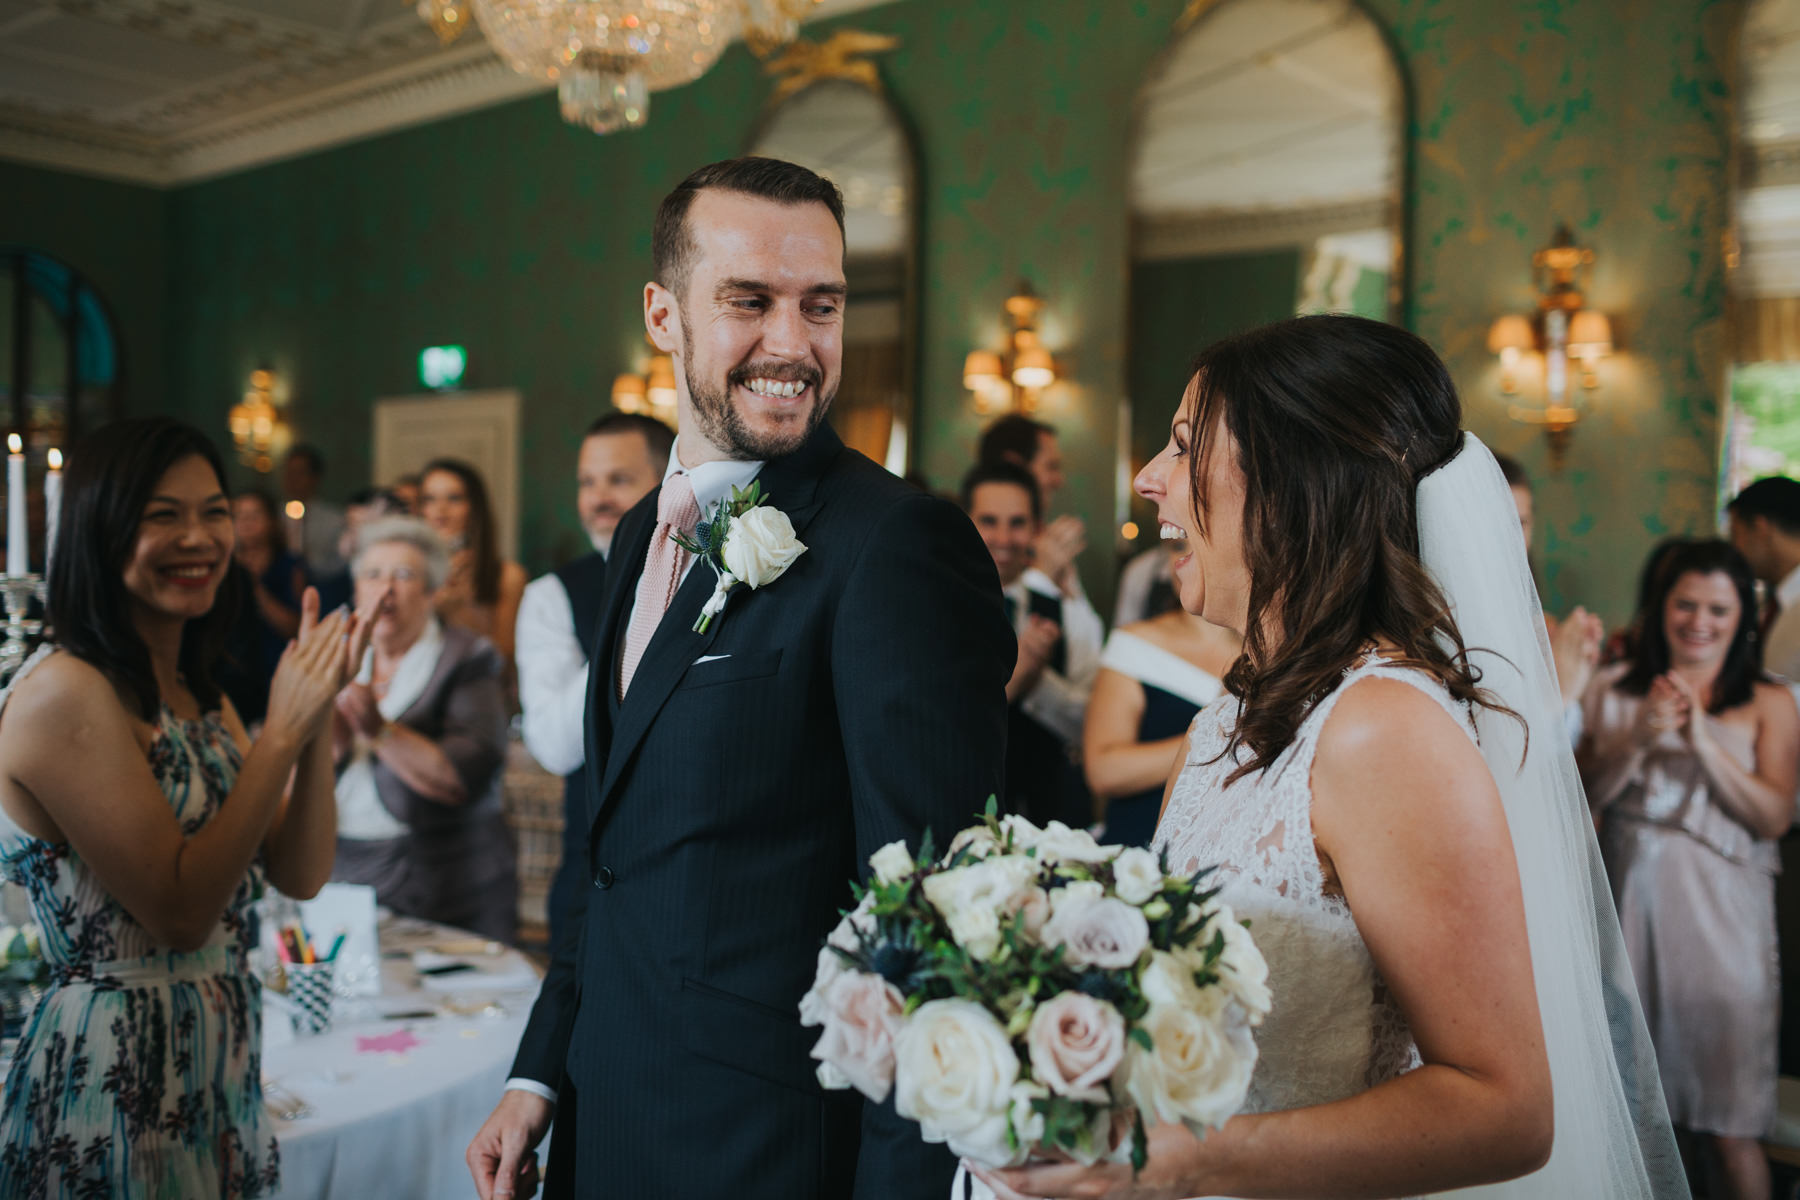 Louise & Mike | Bowcliffe Hall Wedding 91